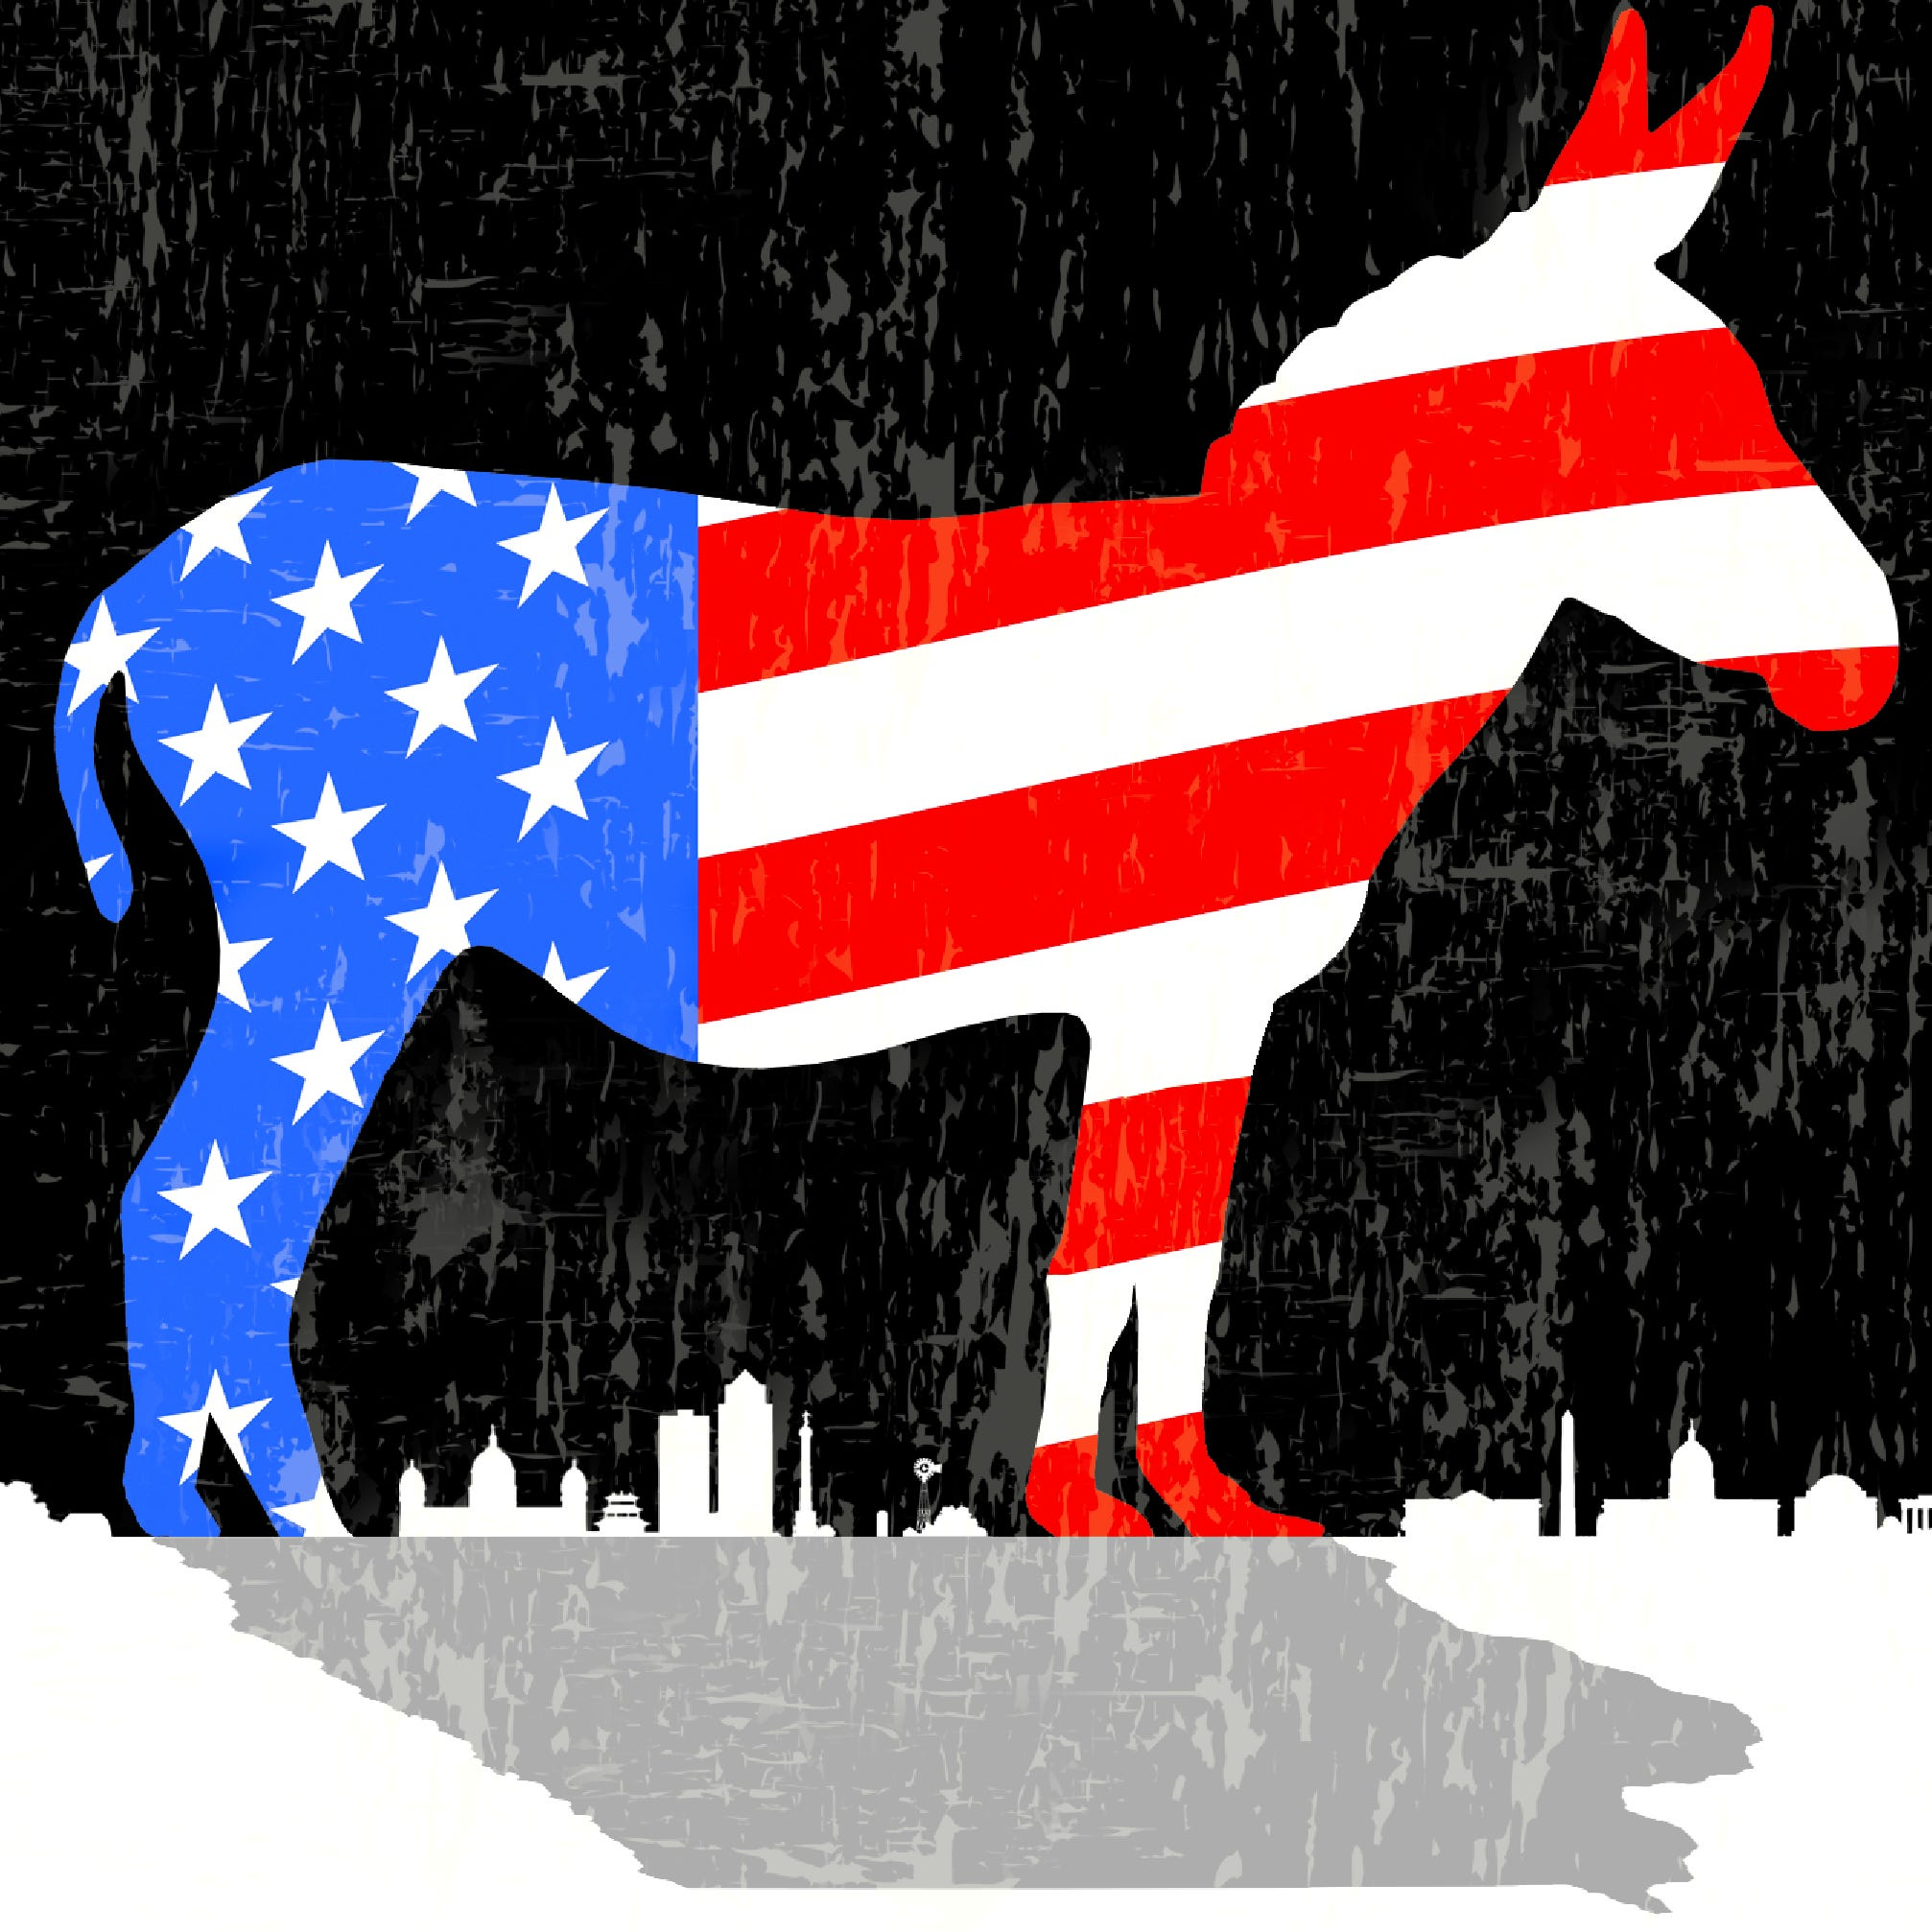 The Register's endorsements for Congress: GOP has failed to govern; give Democrats a chance